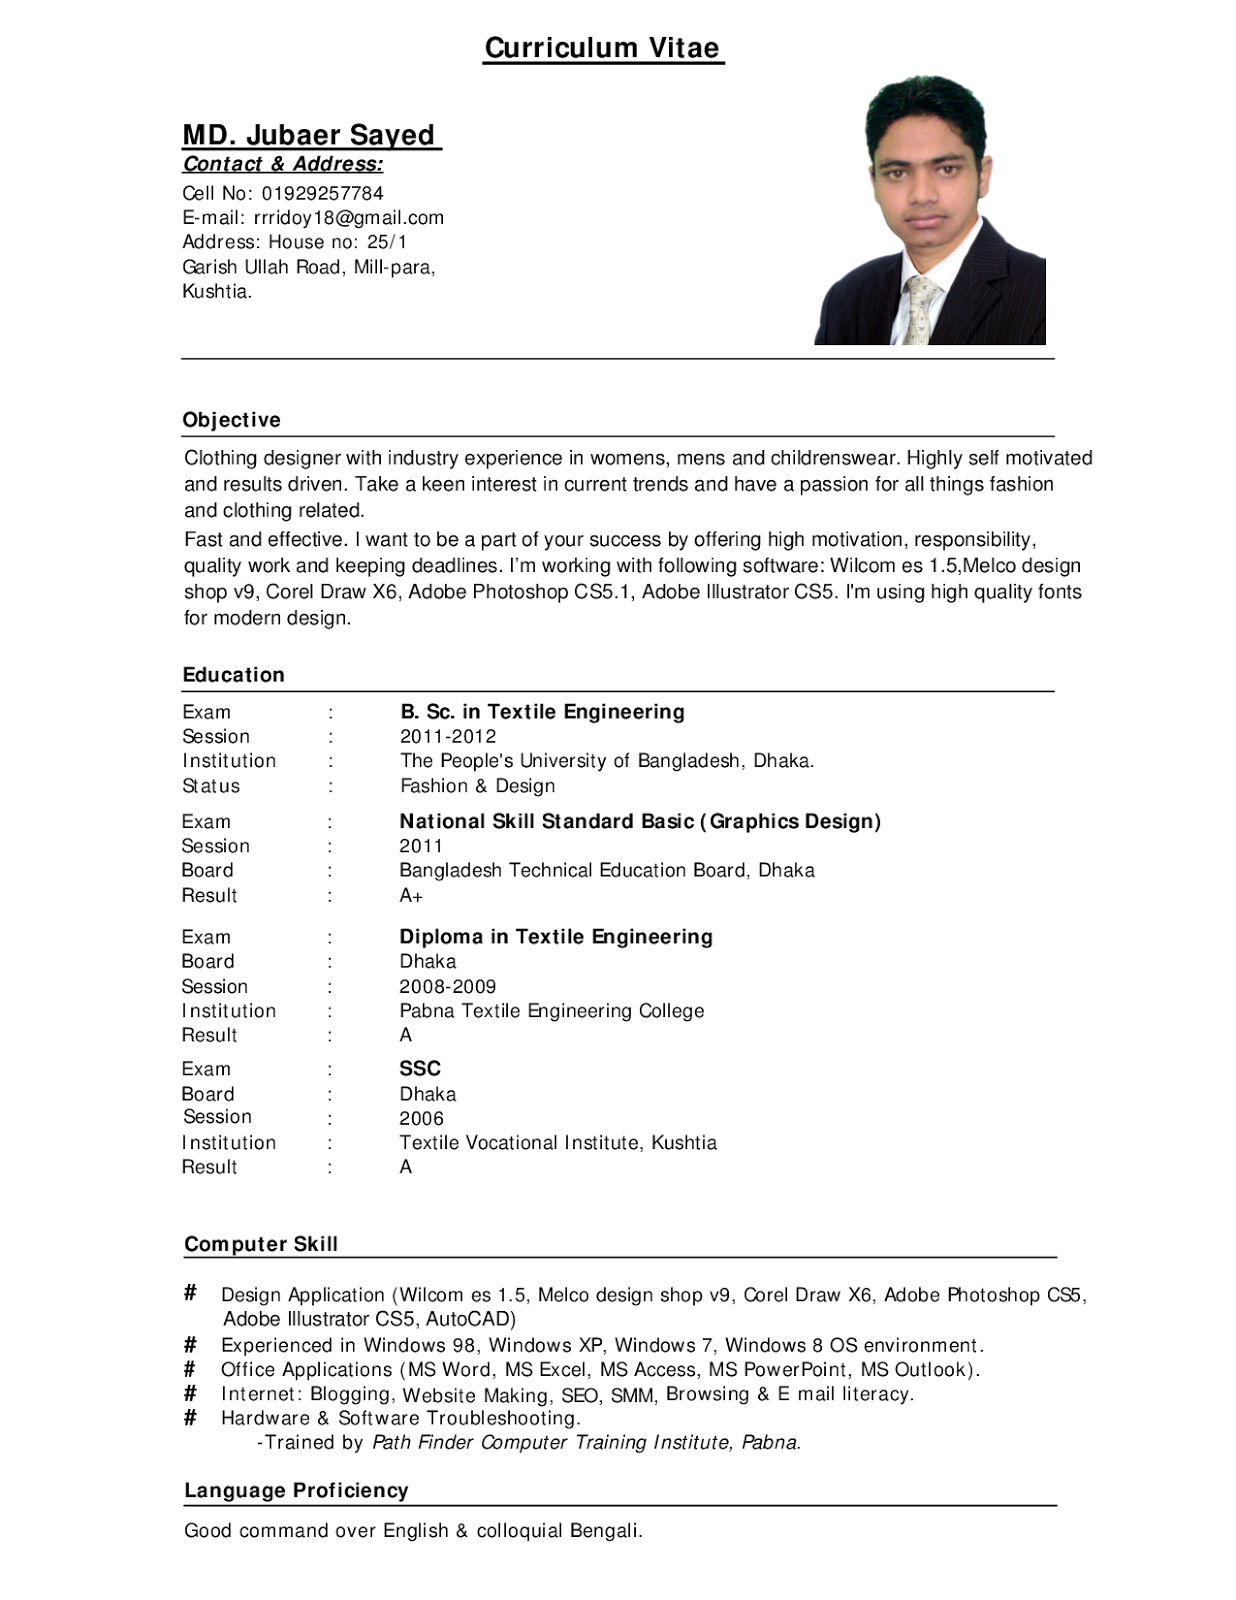 Resume Samples Pdf  Sample Resumes  Sample Resumes